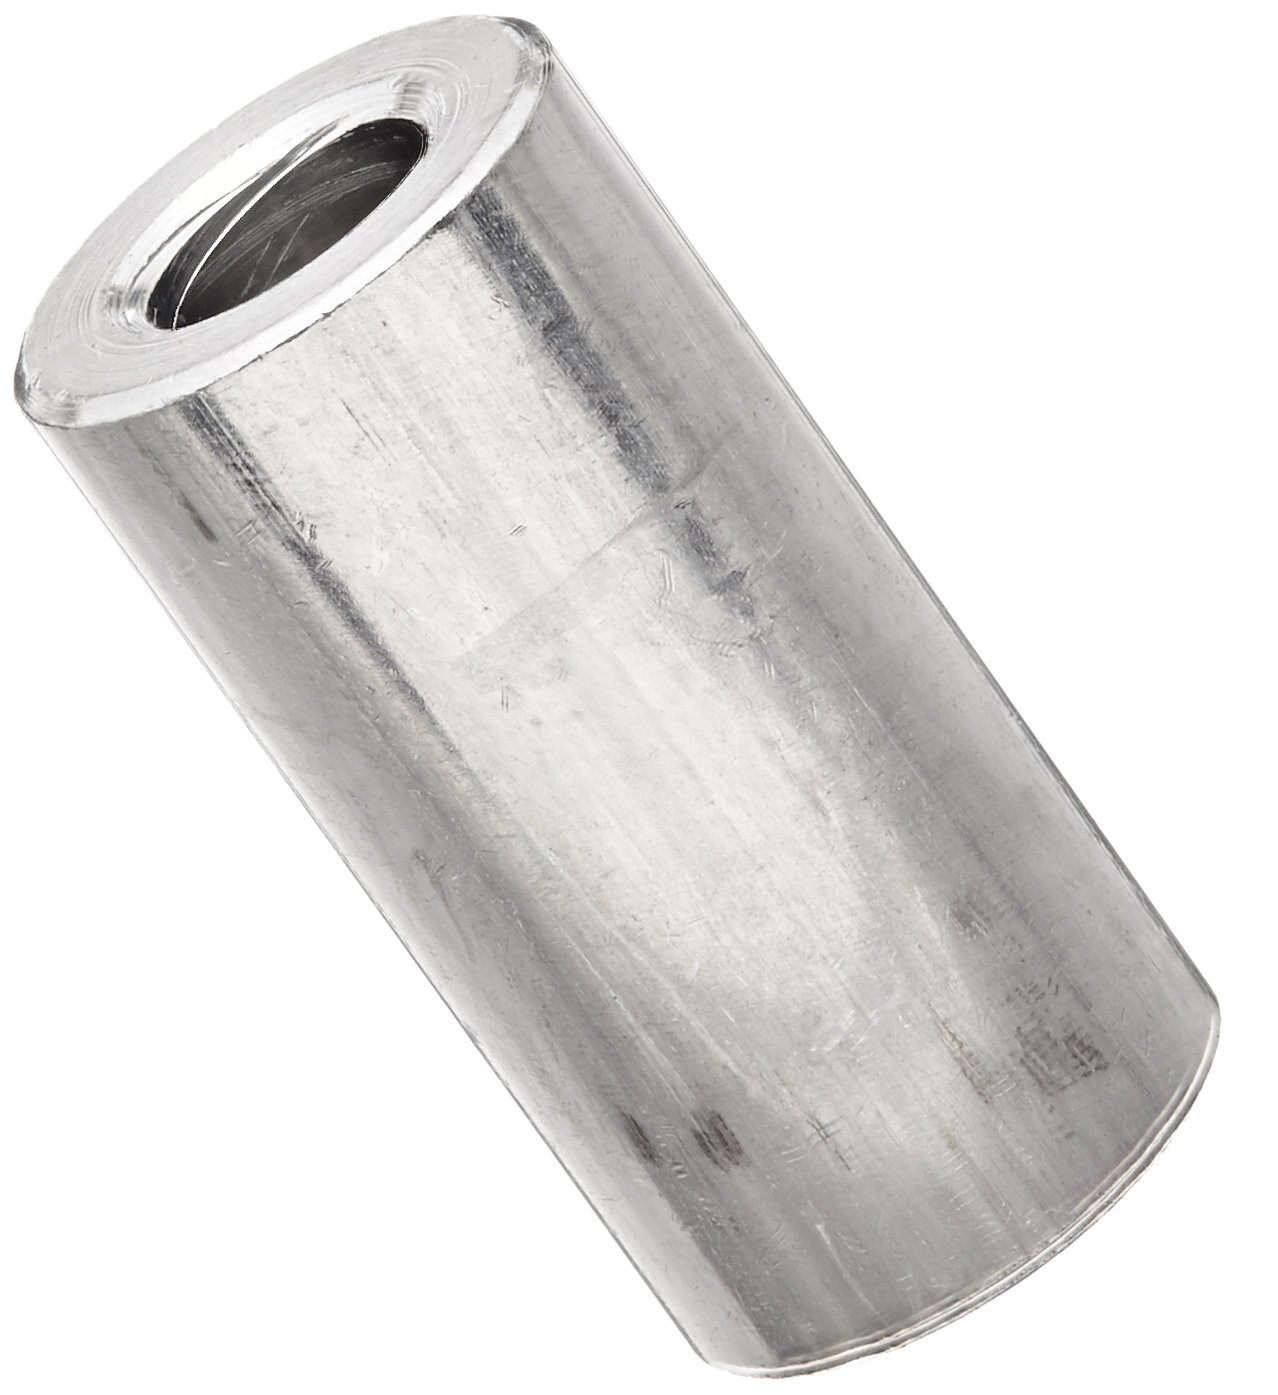 Round Spacer, Aluminum, Plain Finish, 1/4'' Screw Size, 1/2'' OD, 0.252'' ID, 1'' Length, Made in US (Pack of 5)